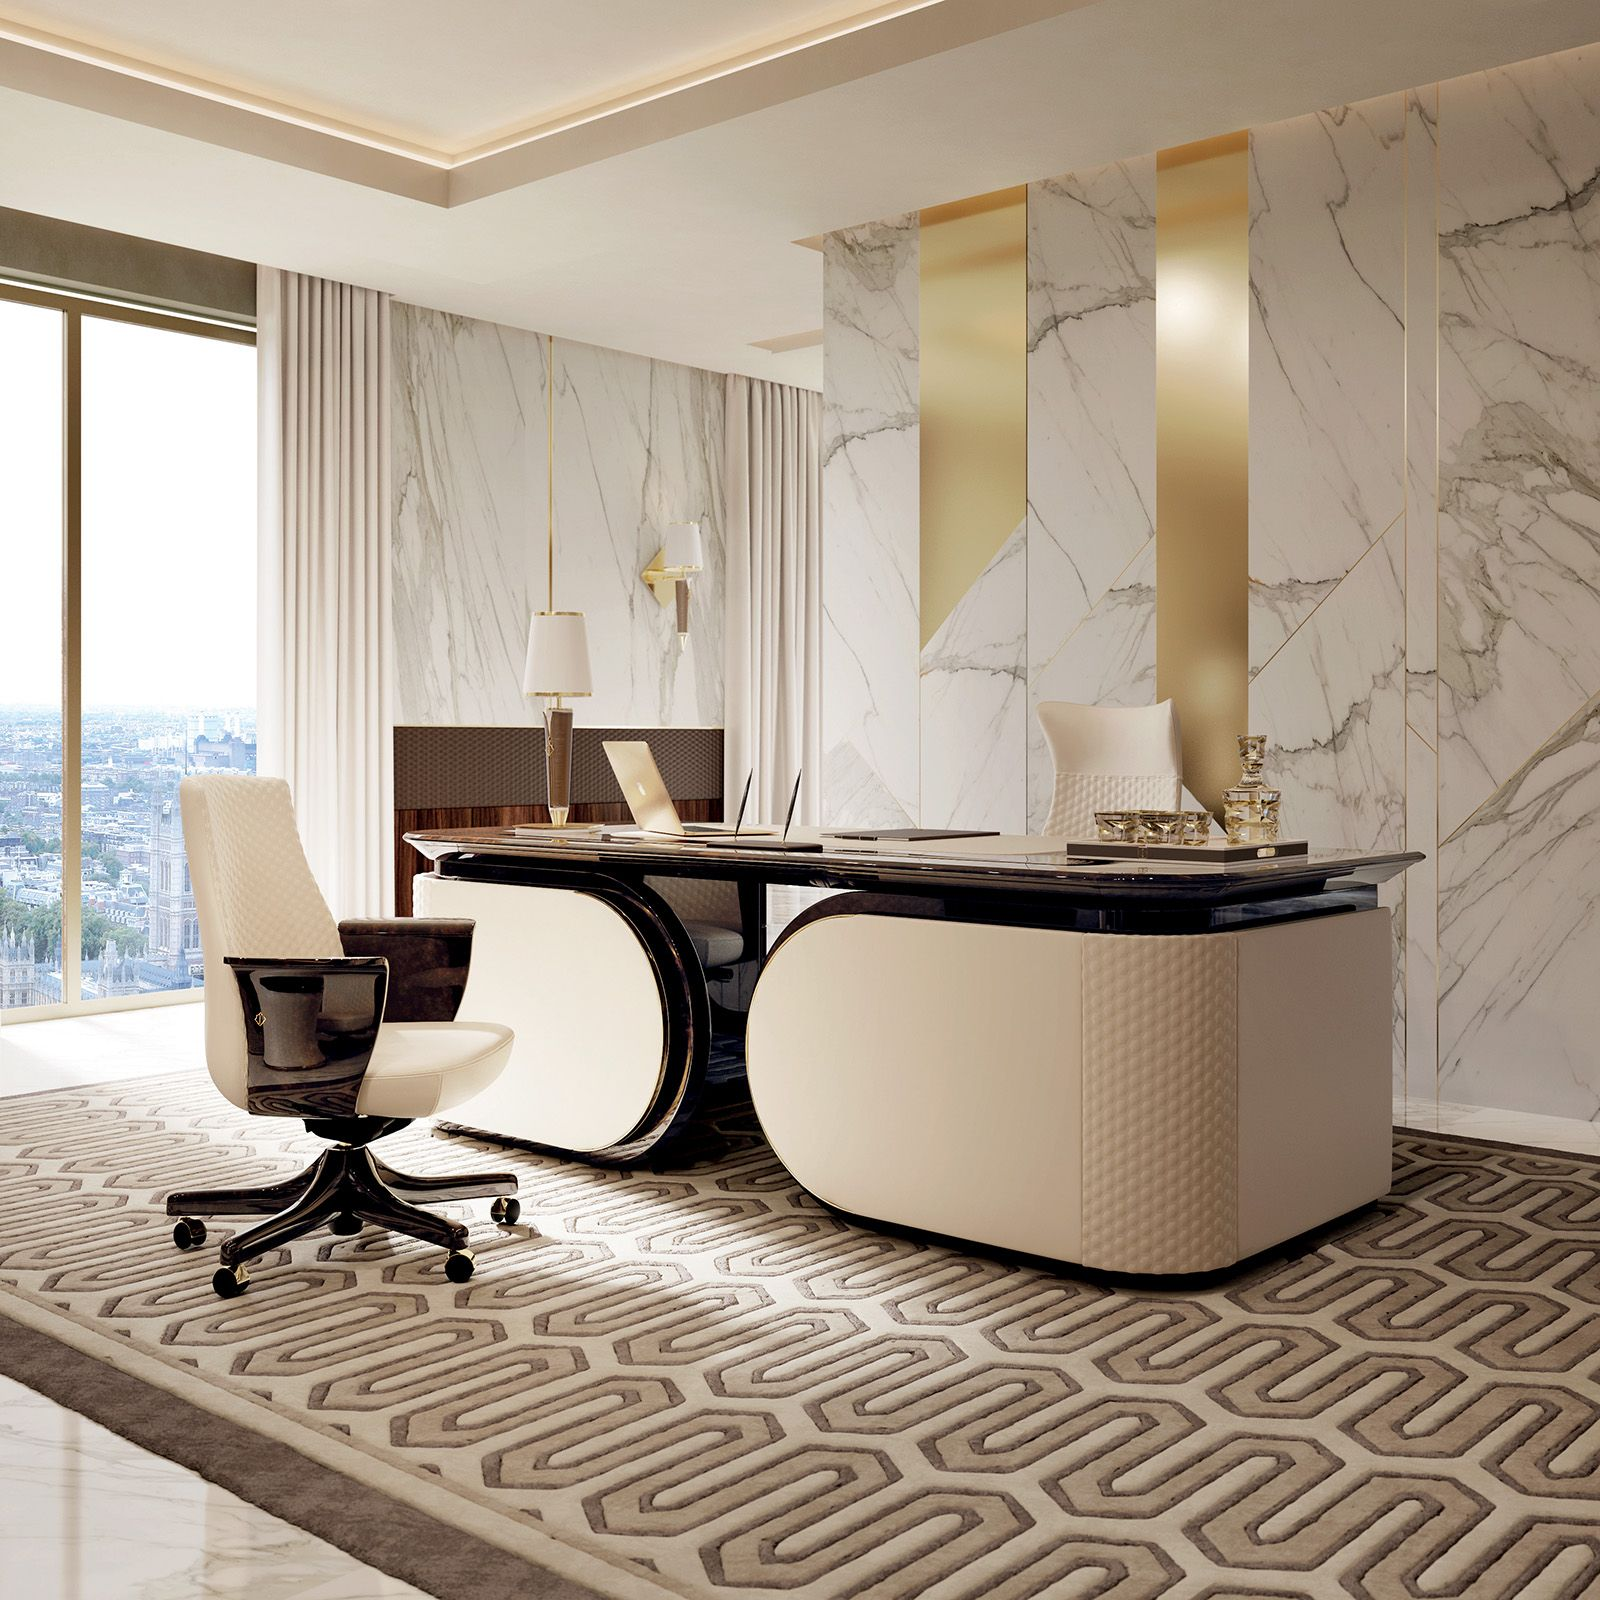 Vogue collection italian luxury office desk for Top luxury interior designers